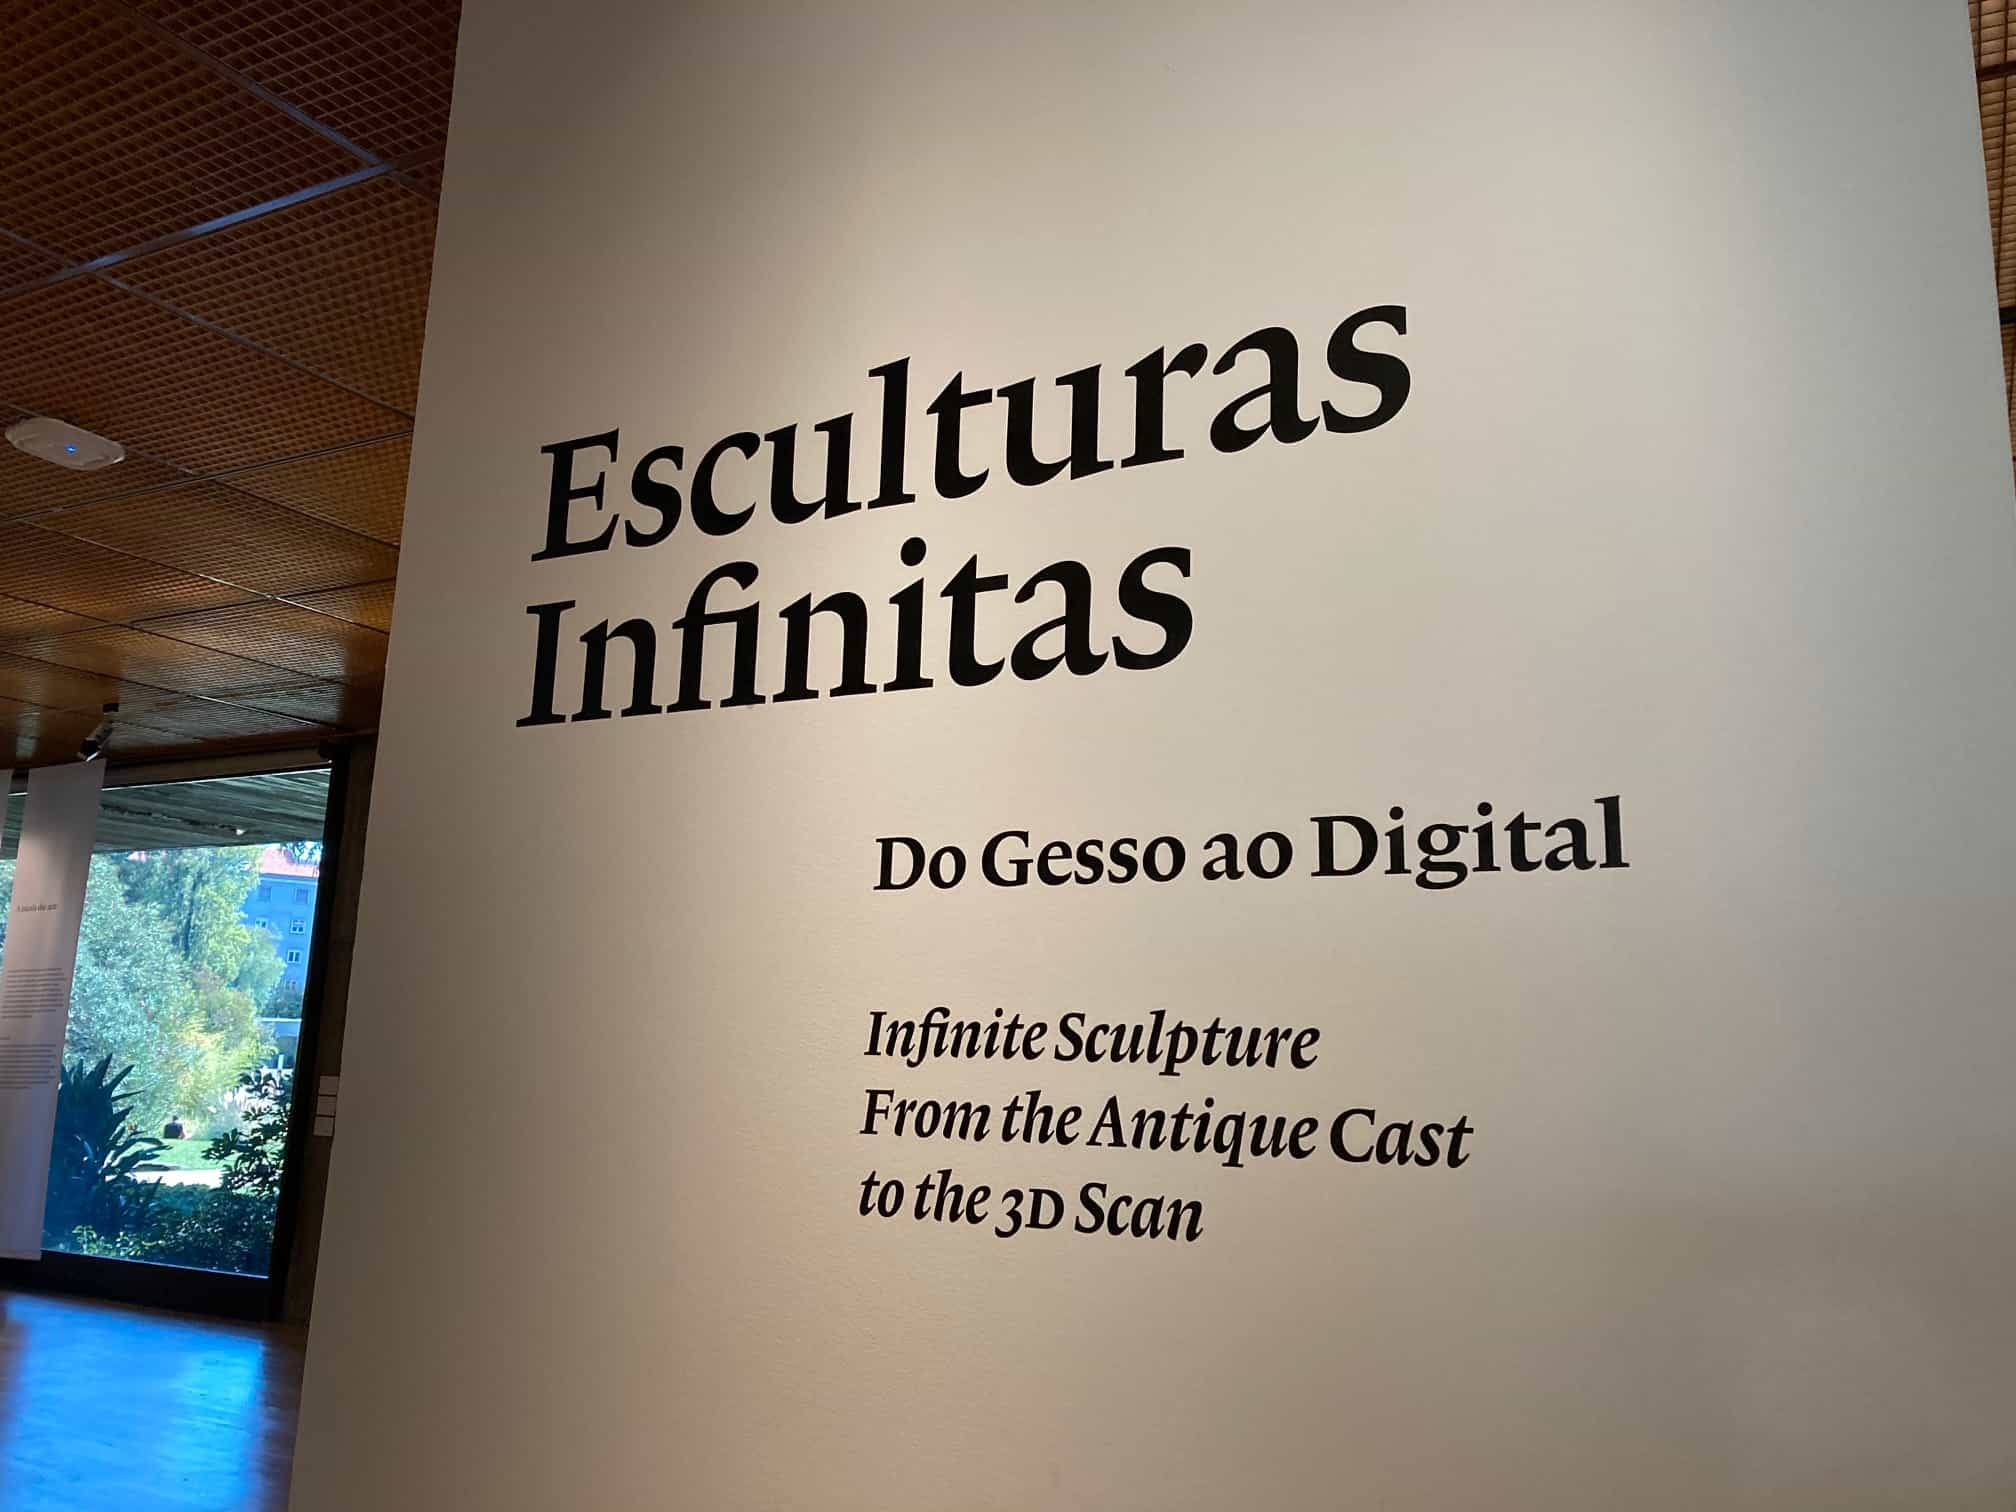 Esculturas Infinitas – Do Gesso ao Digital